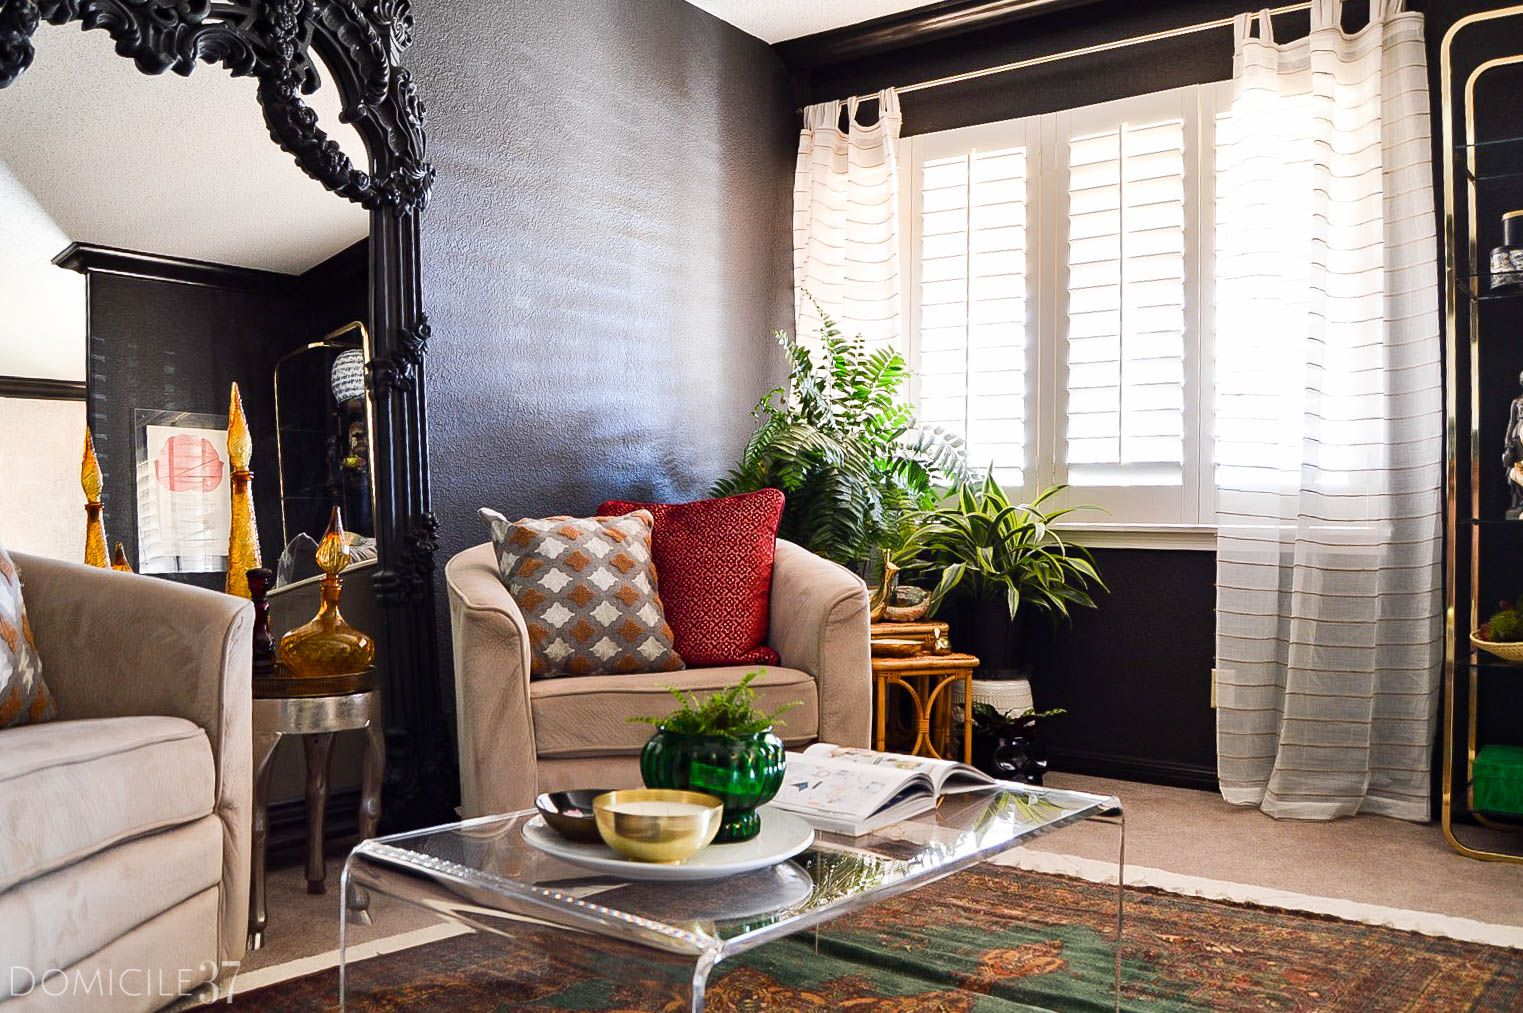 Vintage Eclectic Foyer And Sitting Room Reveal Domicile 37 Decor Home Living Room Eclectic Living Room Vintage Apartment Decorating On A Budget #vintage #eclectic #living #room